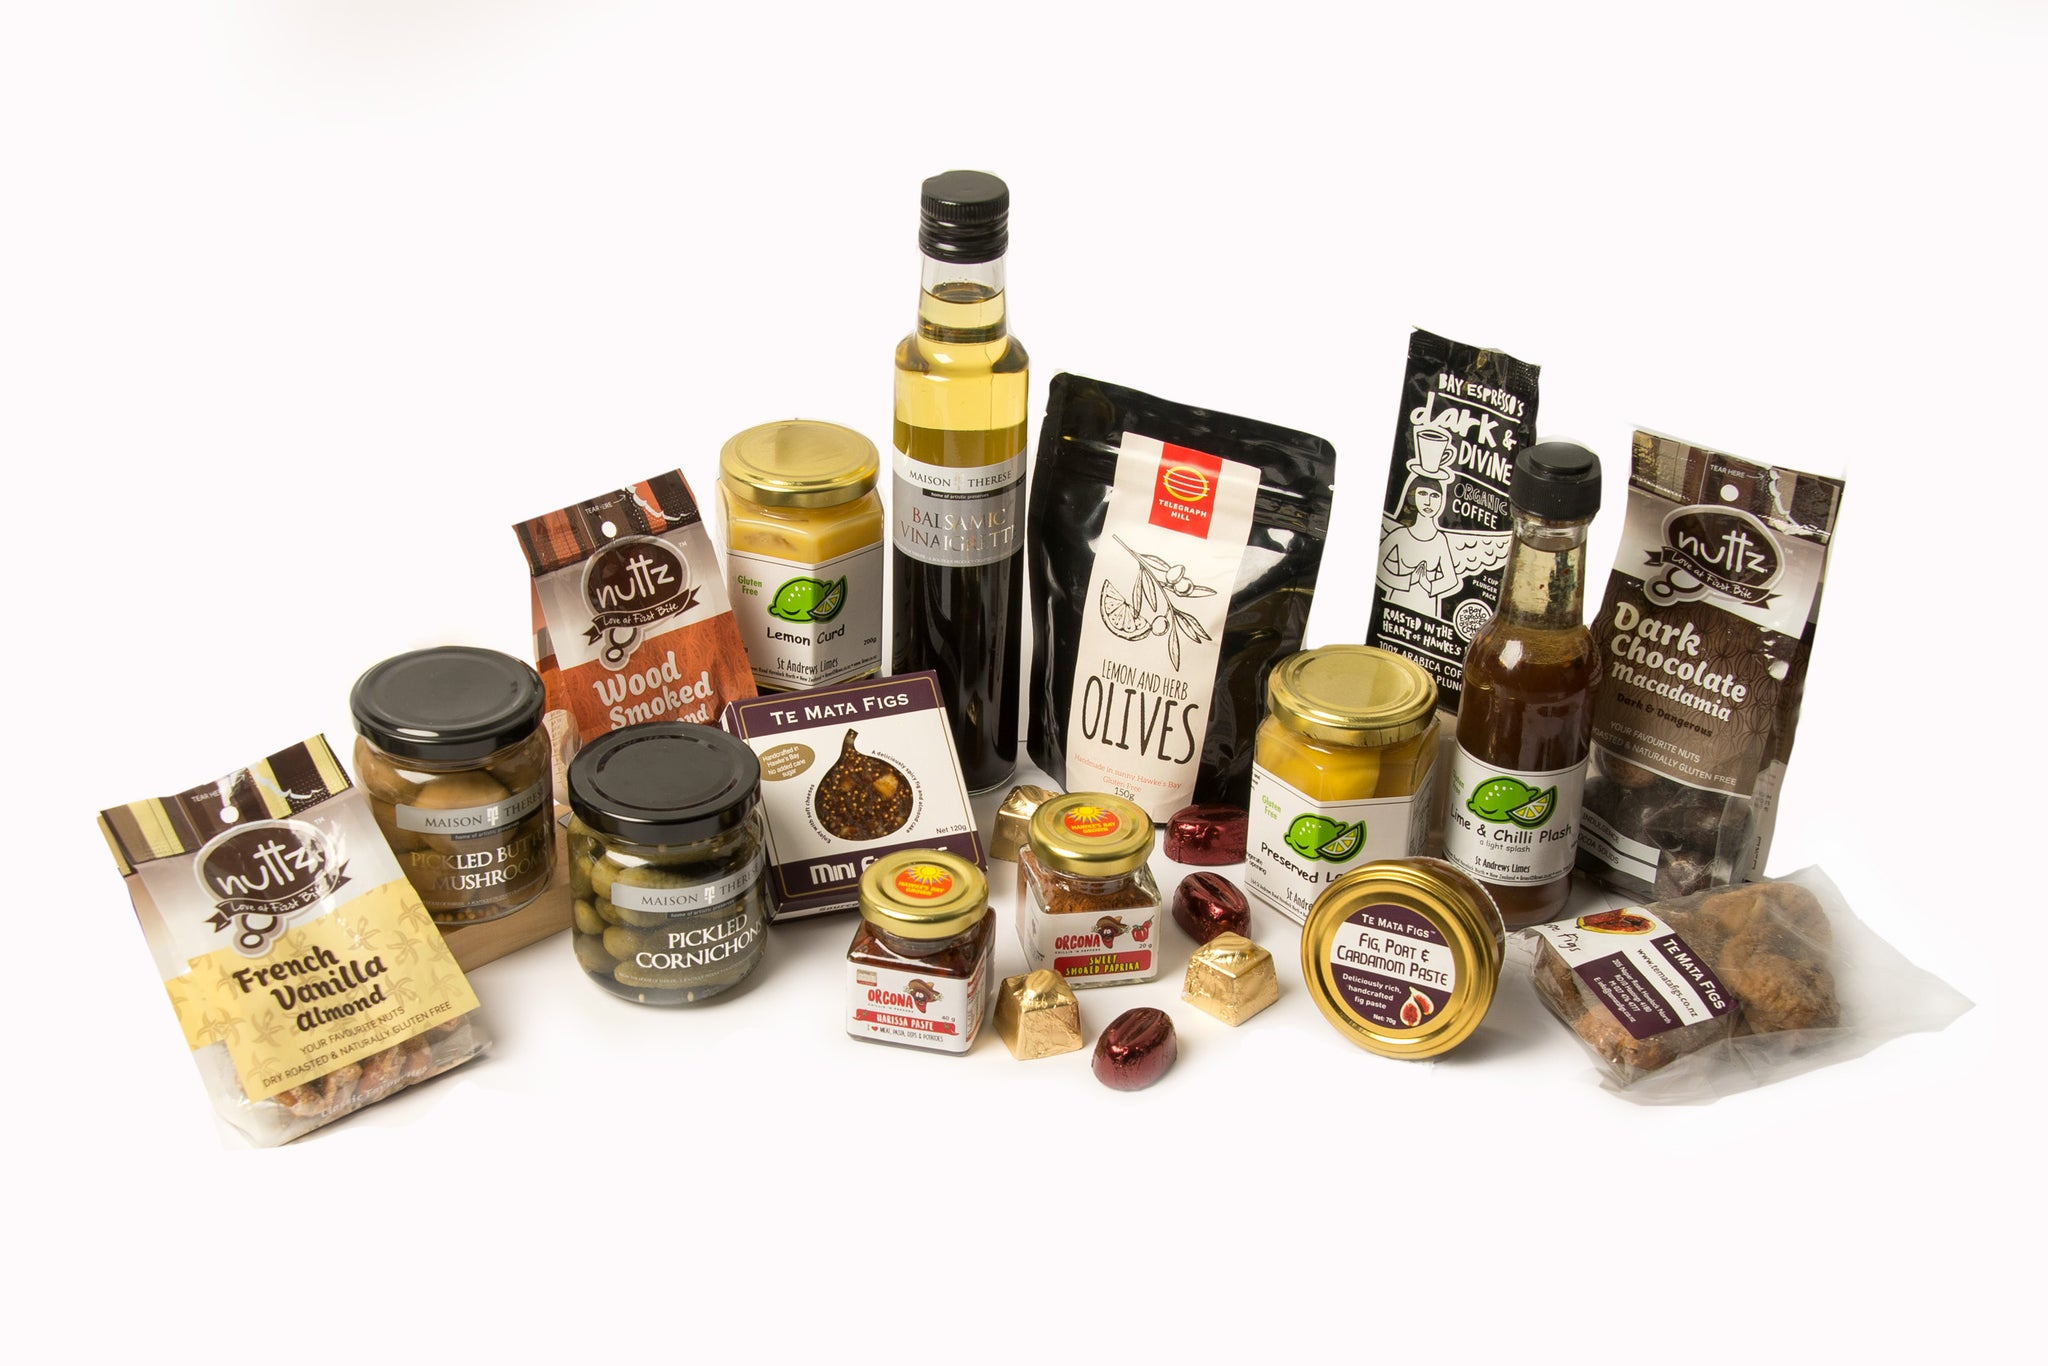 Sumptuous Products Hawke's Bay in a Box